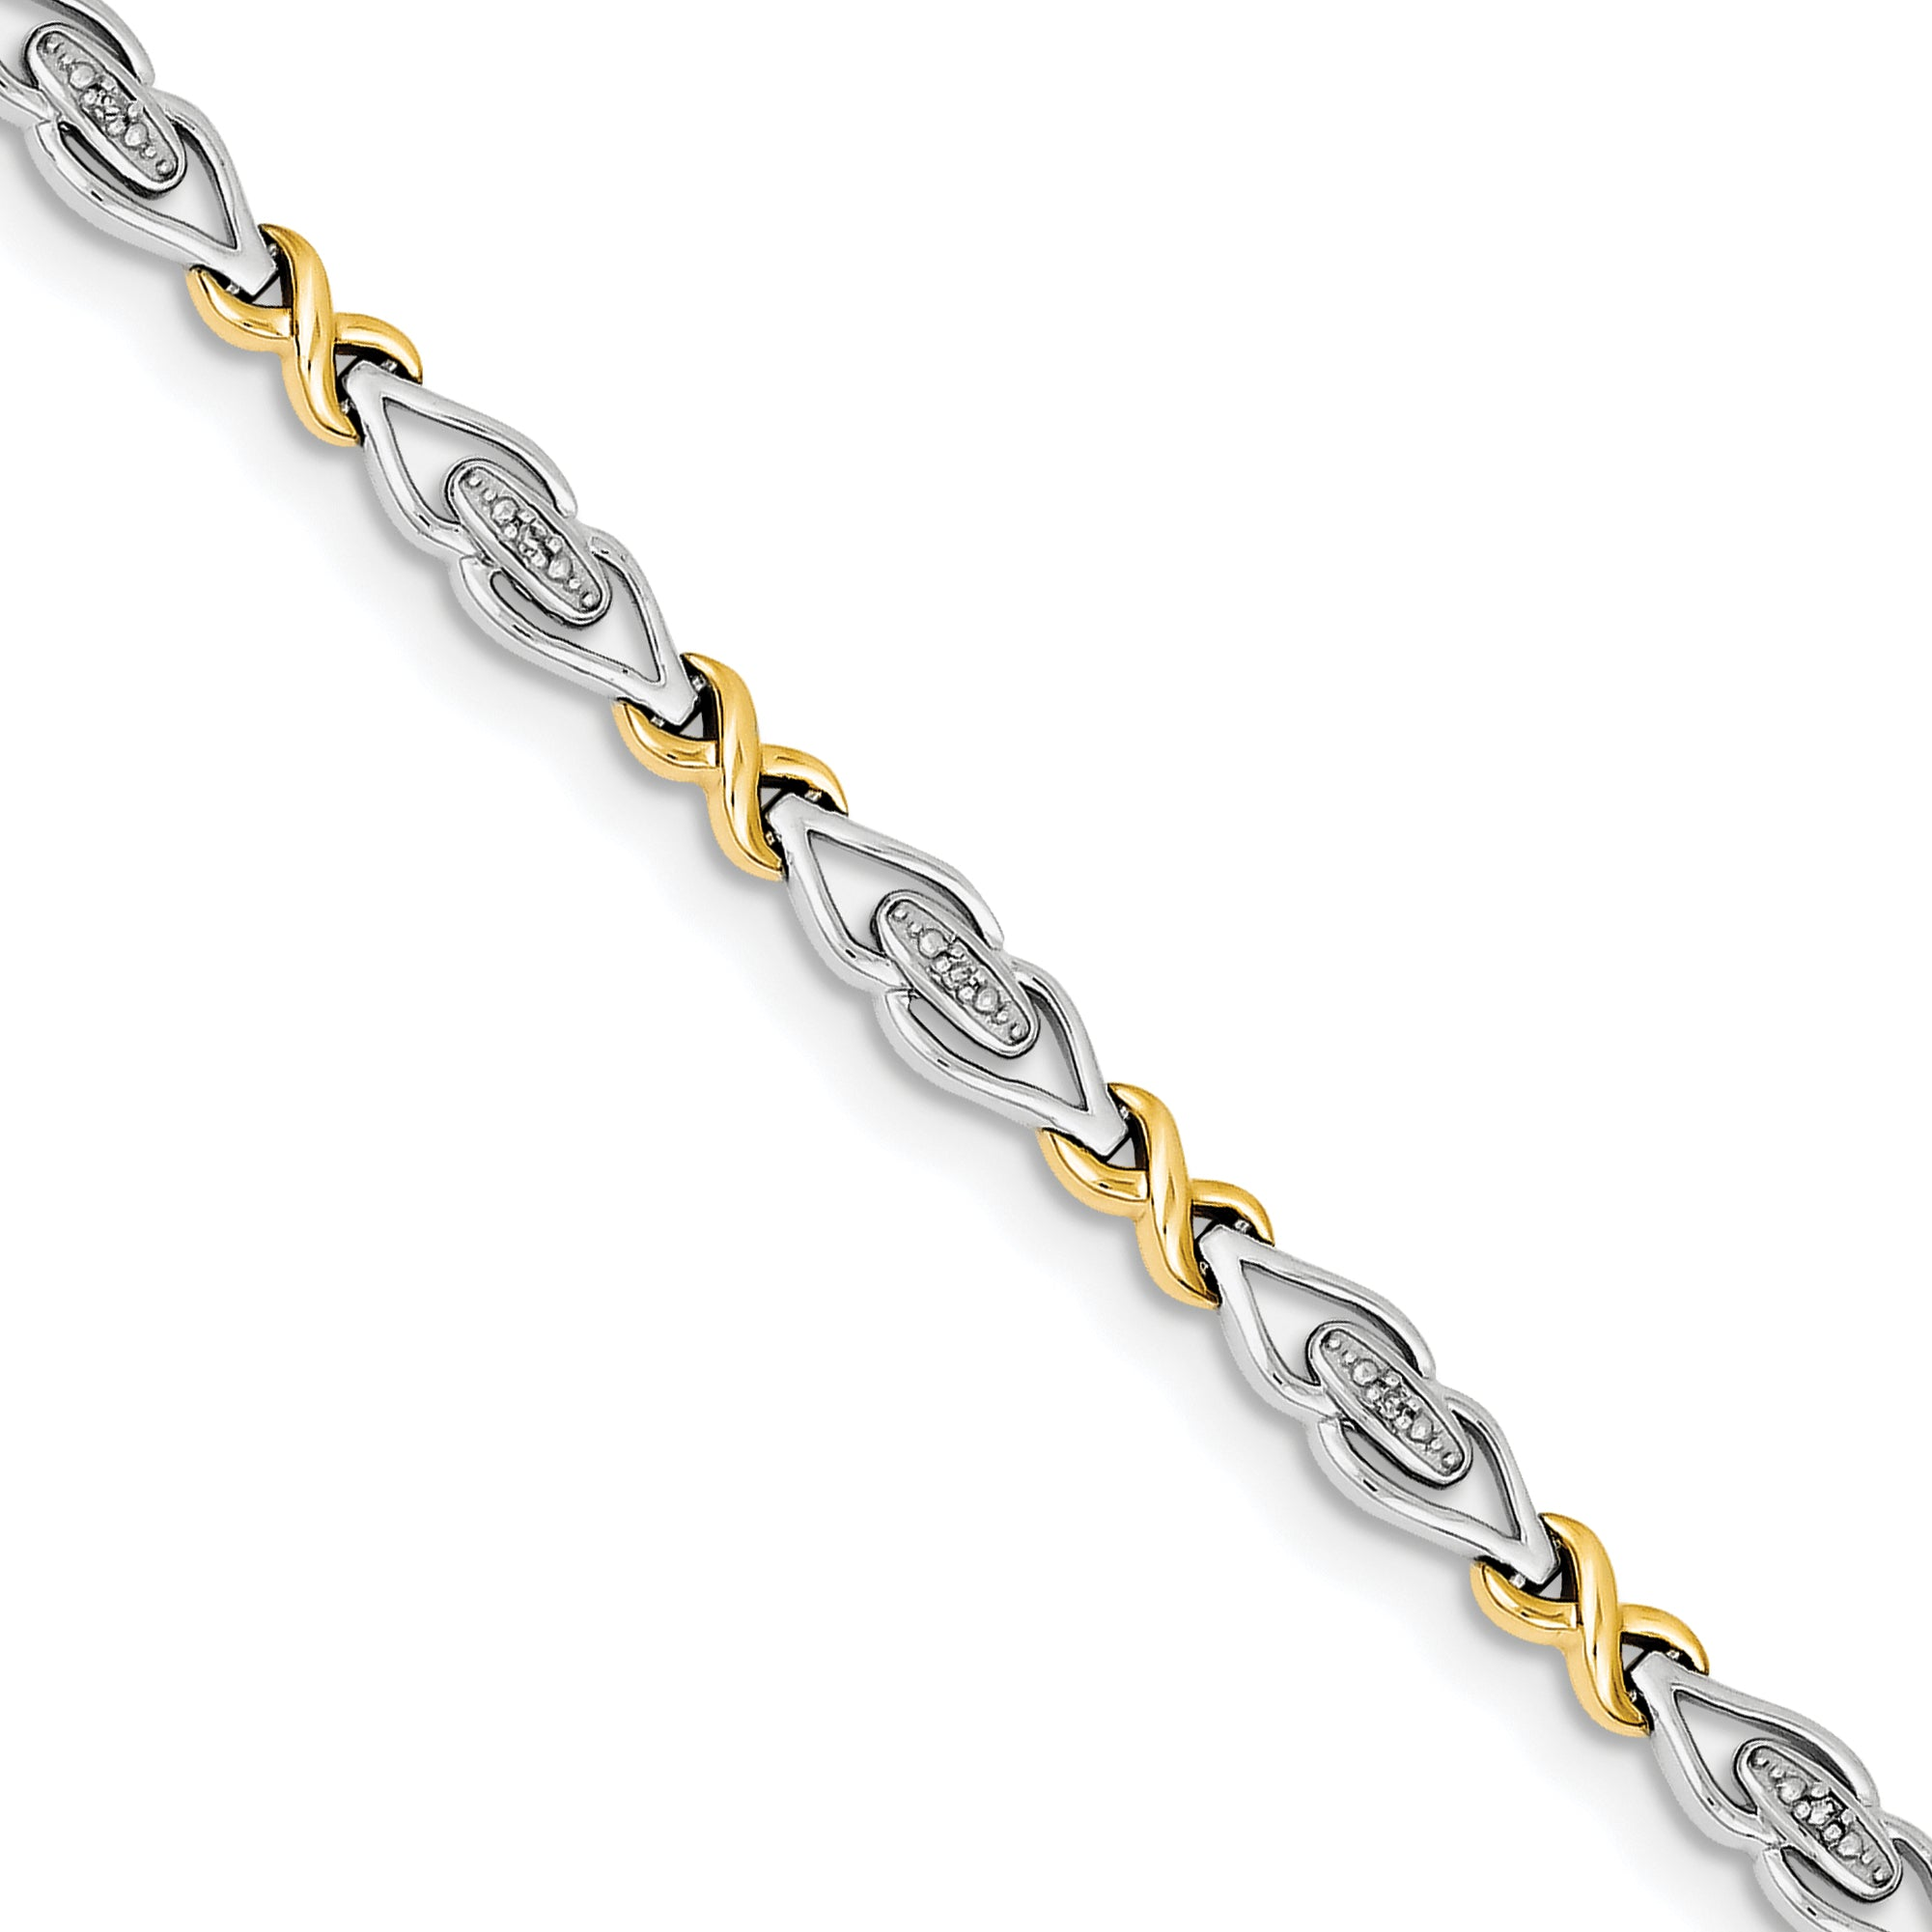 Sterling Silver Rhodium-plated & 14k Diam. Bracelet QDX1174 - shirin-diamonds